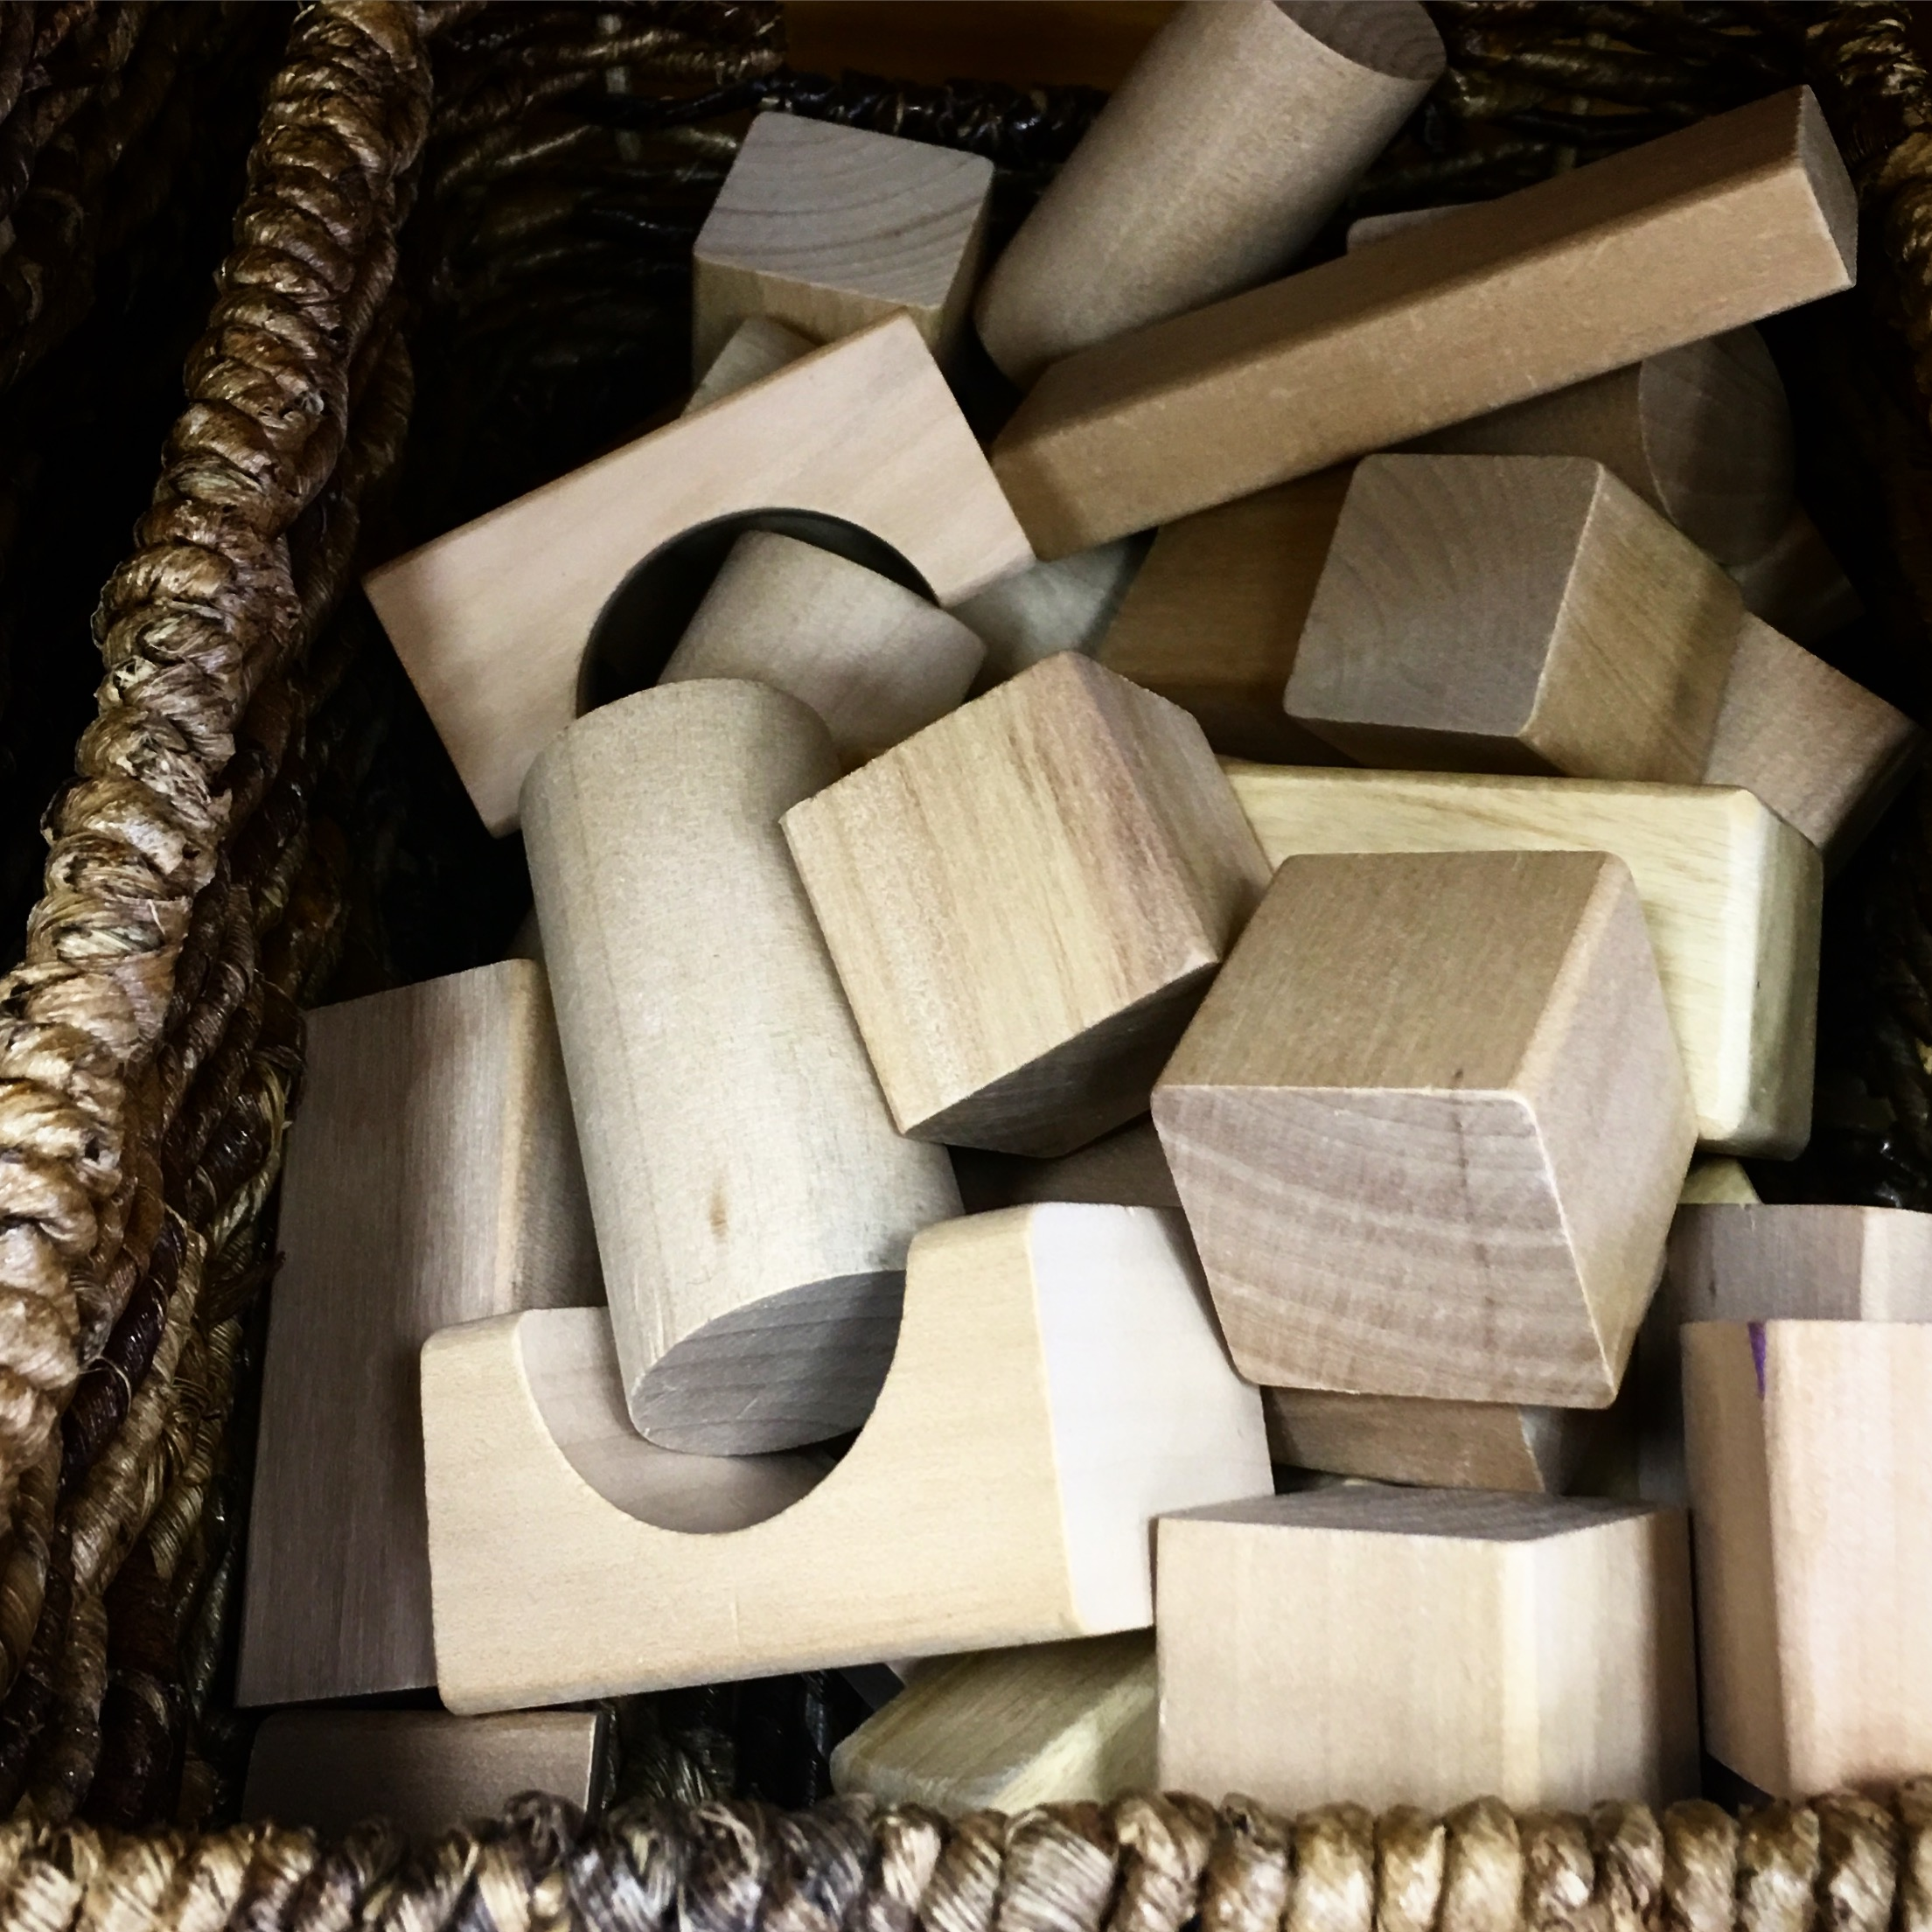 Torah Play rooms are full of natural materials for kids to explore like wooden blocks and silk materials